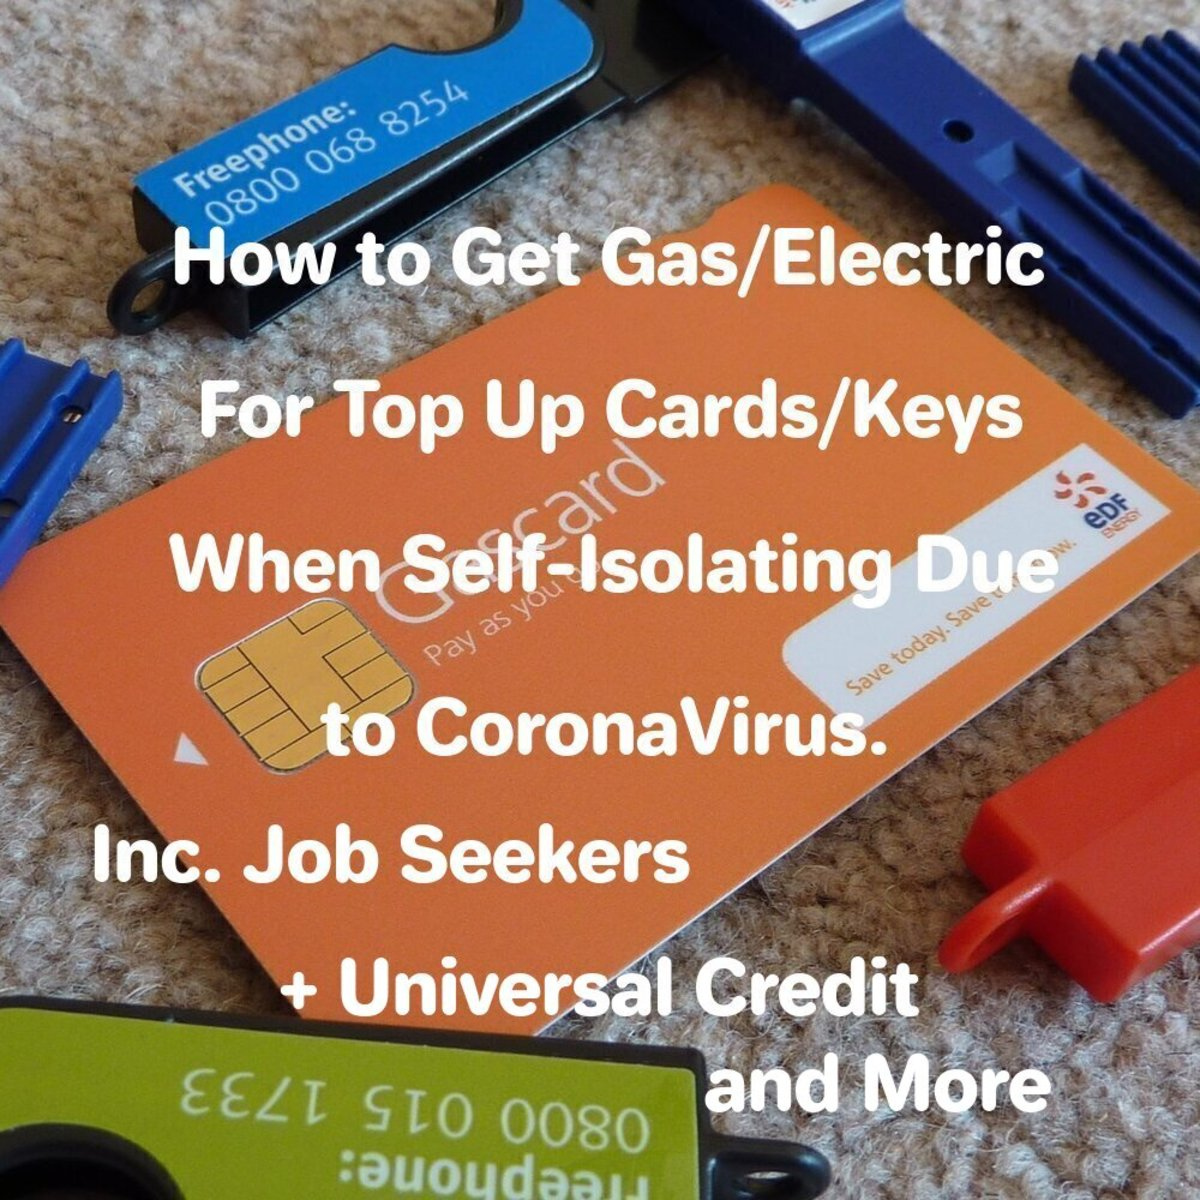 How to Get Gas/Electric for Top-up Cards When Self Isolating Due to Coronavirus. Inc. Jobseekers/ Universal Credit, more